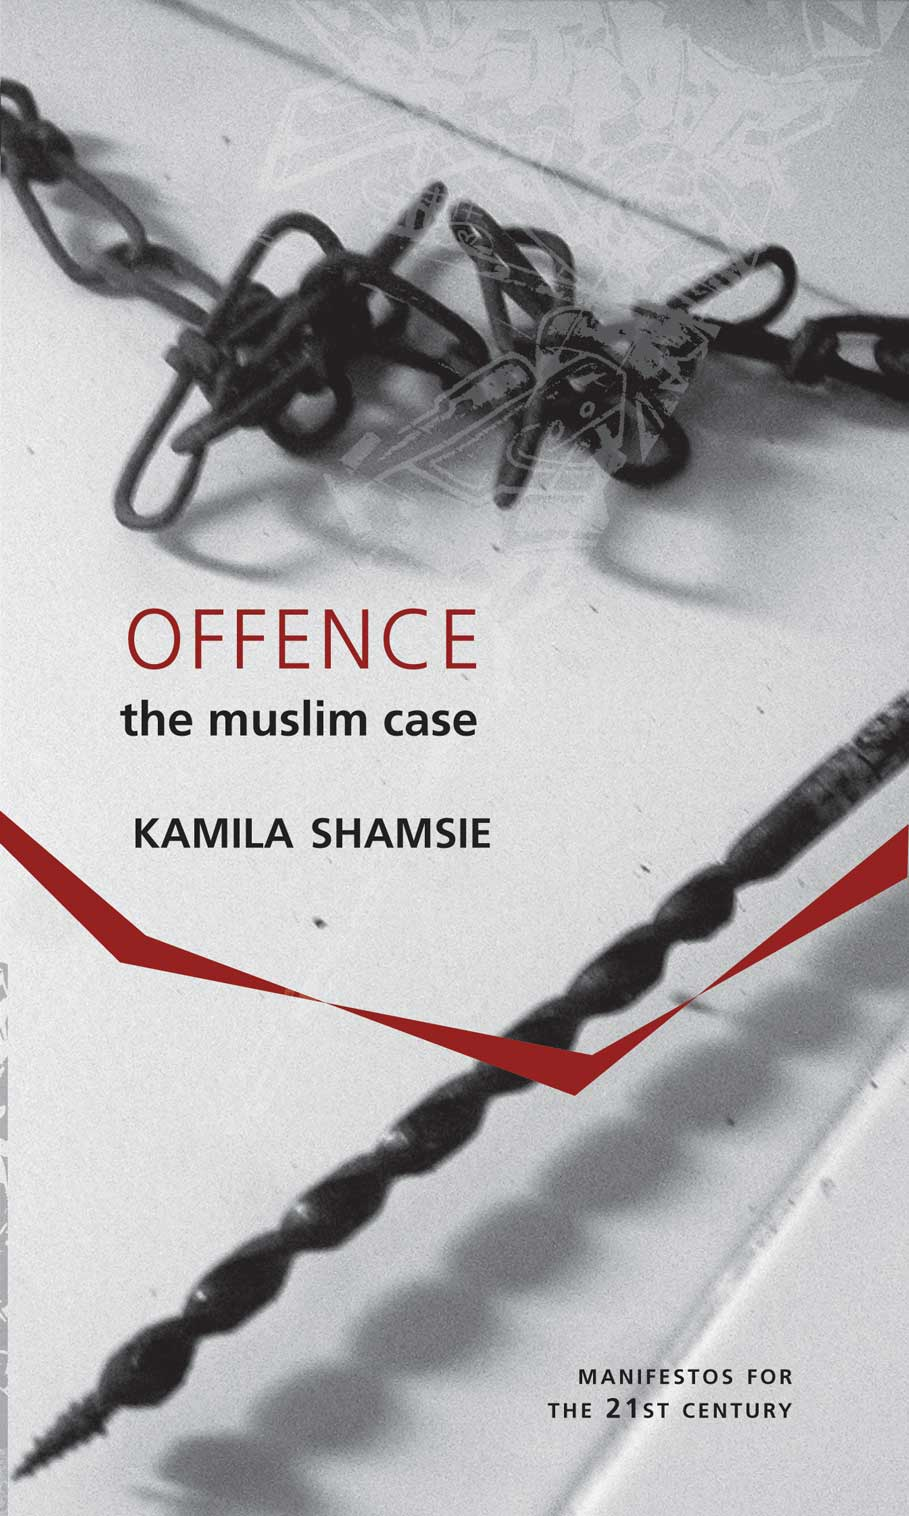 Offence: The Muslim Case by Kamila Shamsie | Seagull Books